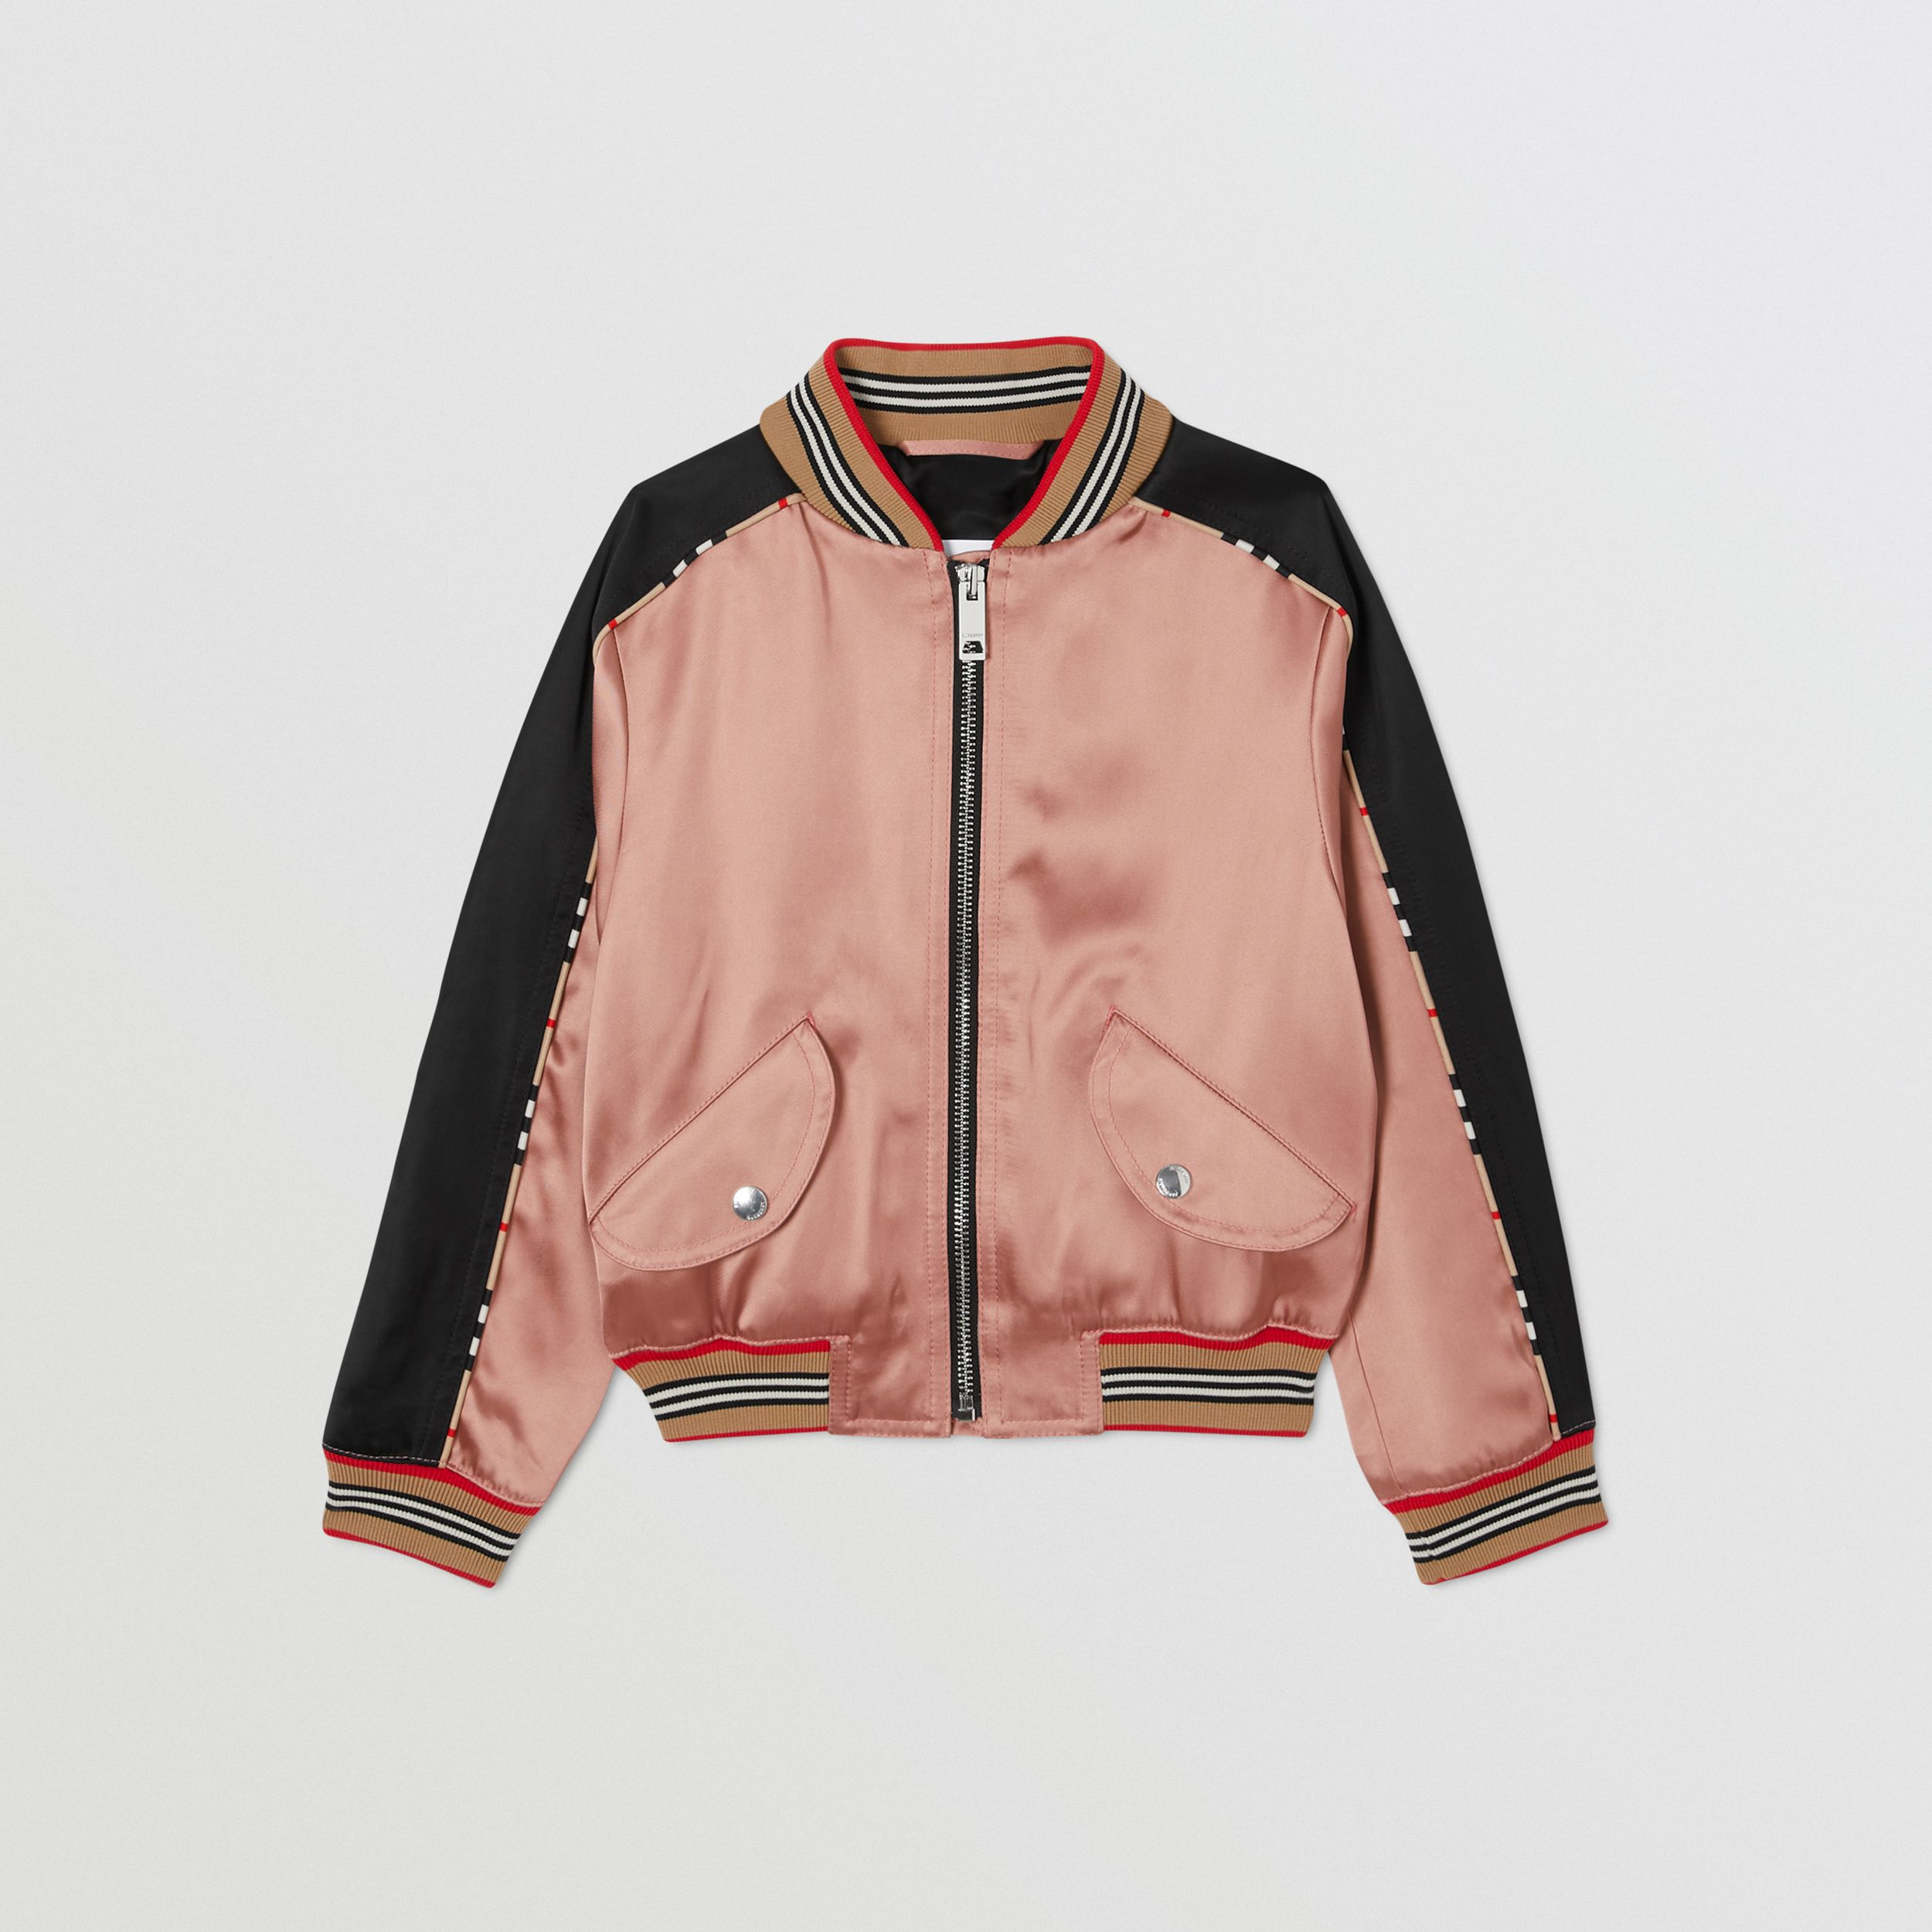 Deer Motif Sateen Bomber Jacket in Dusty Pink | Burberry - 1